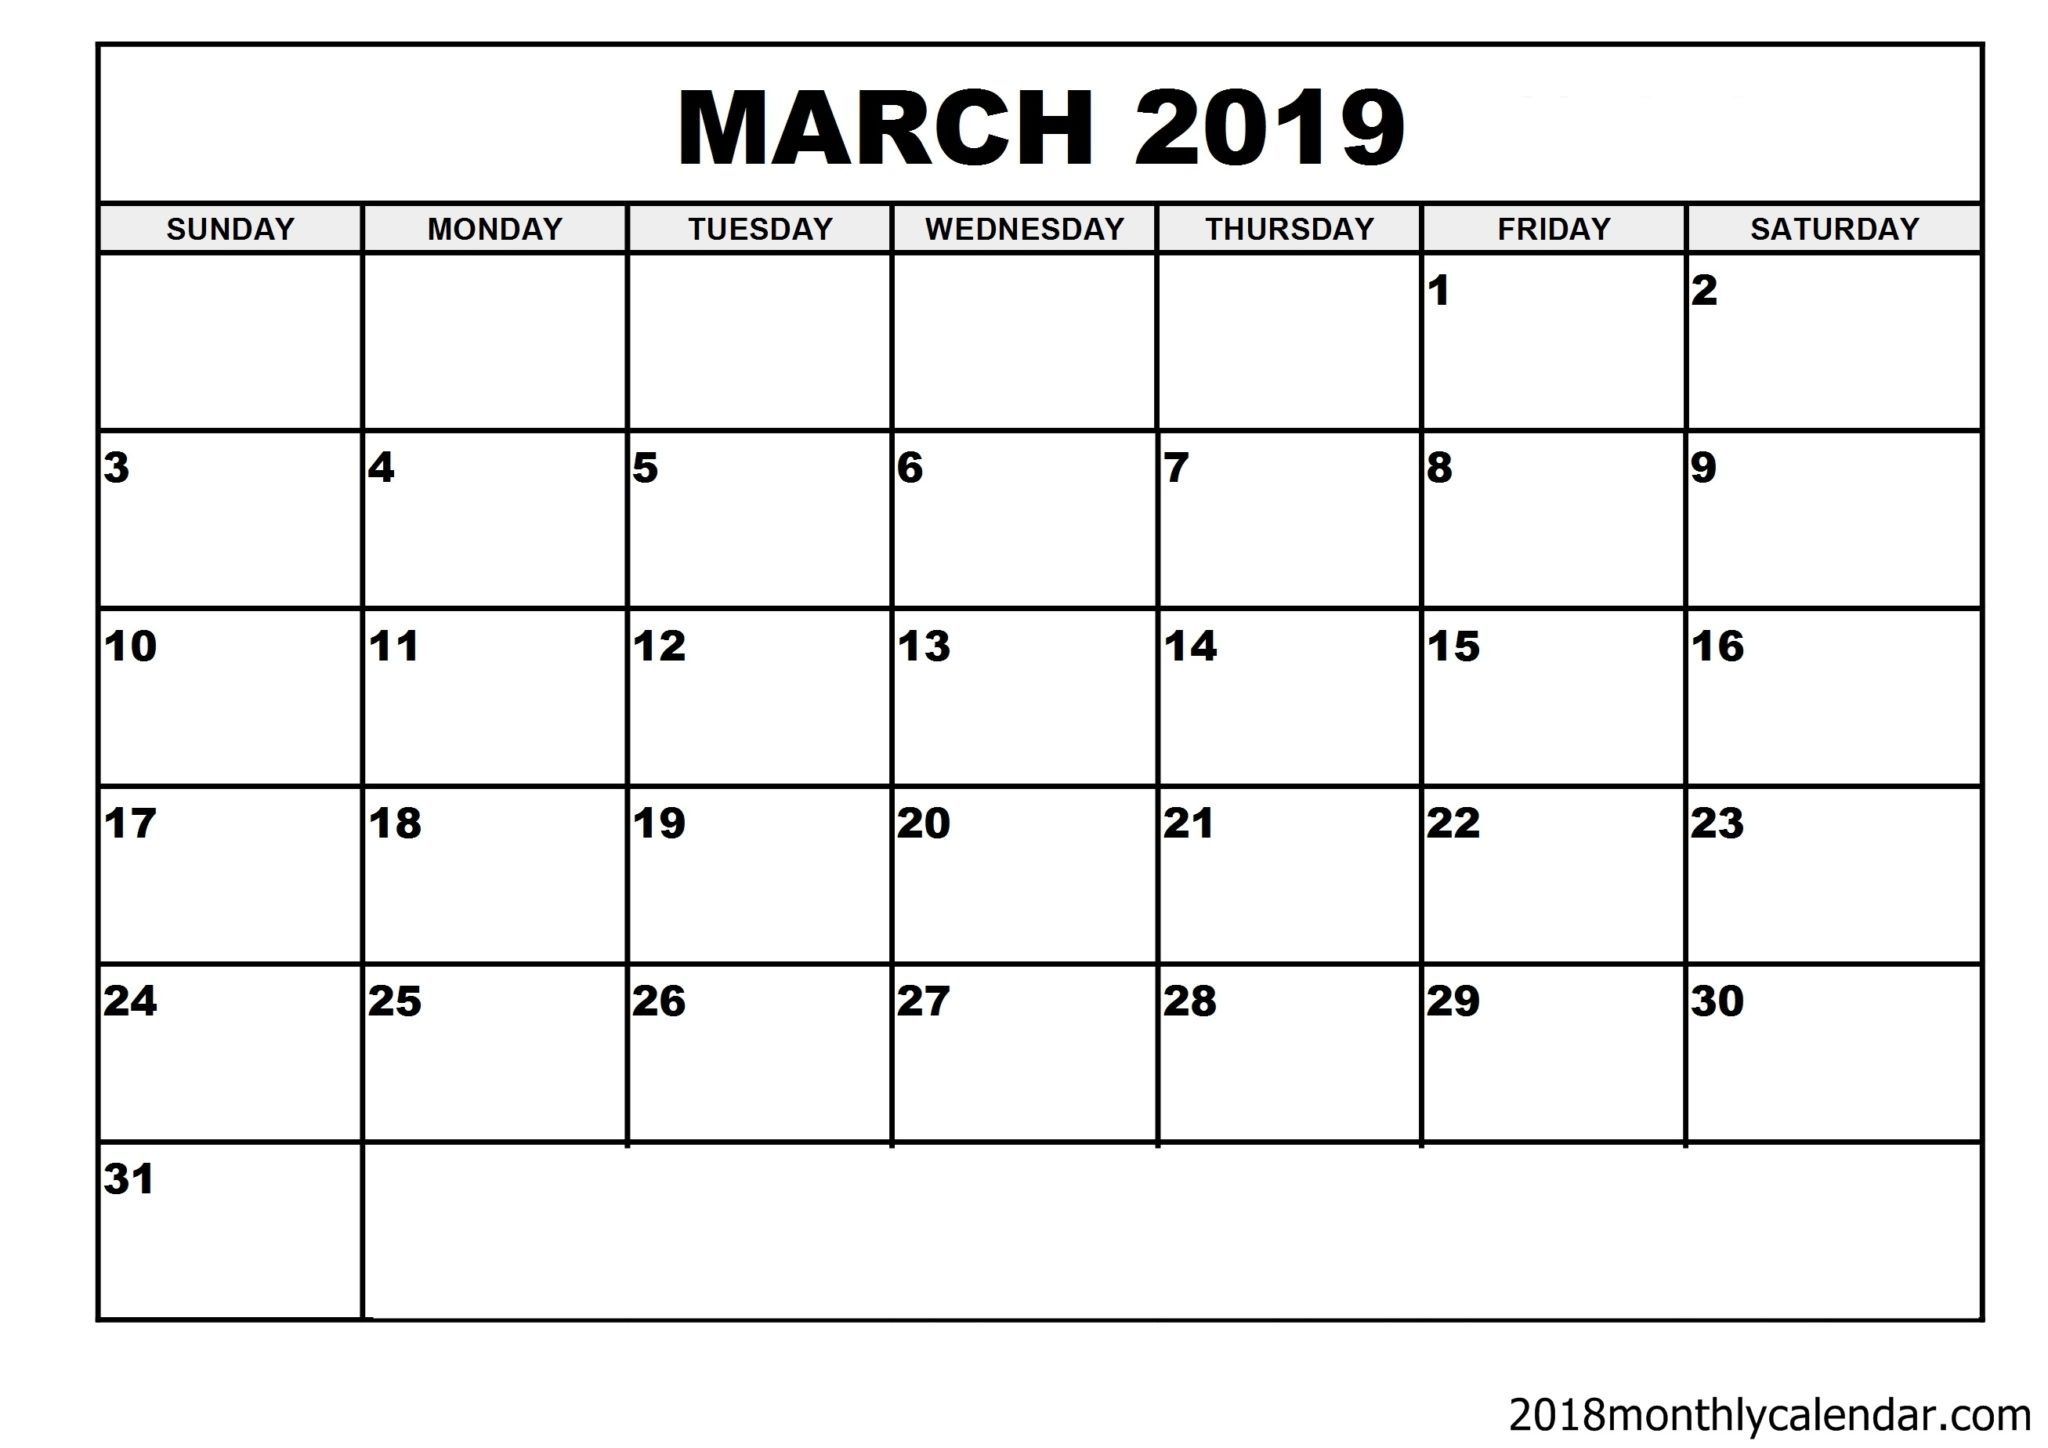 March 2019 Editable Calendar Template | Editable Calendar